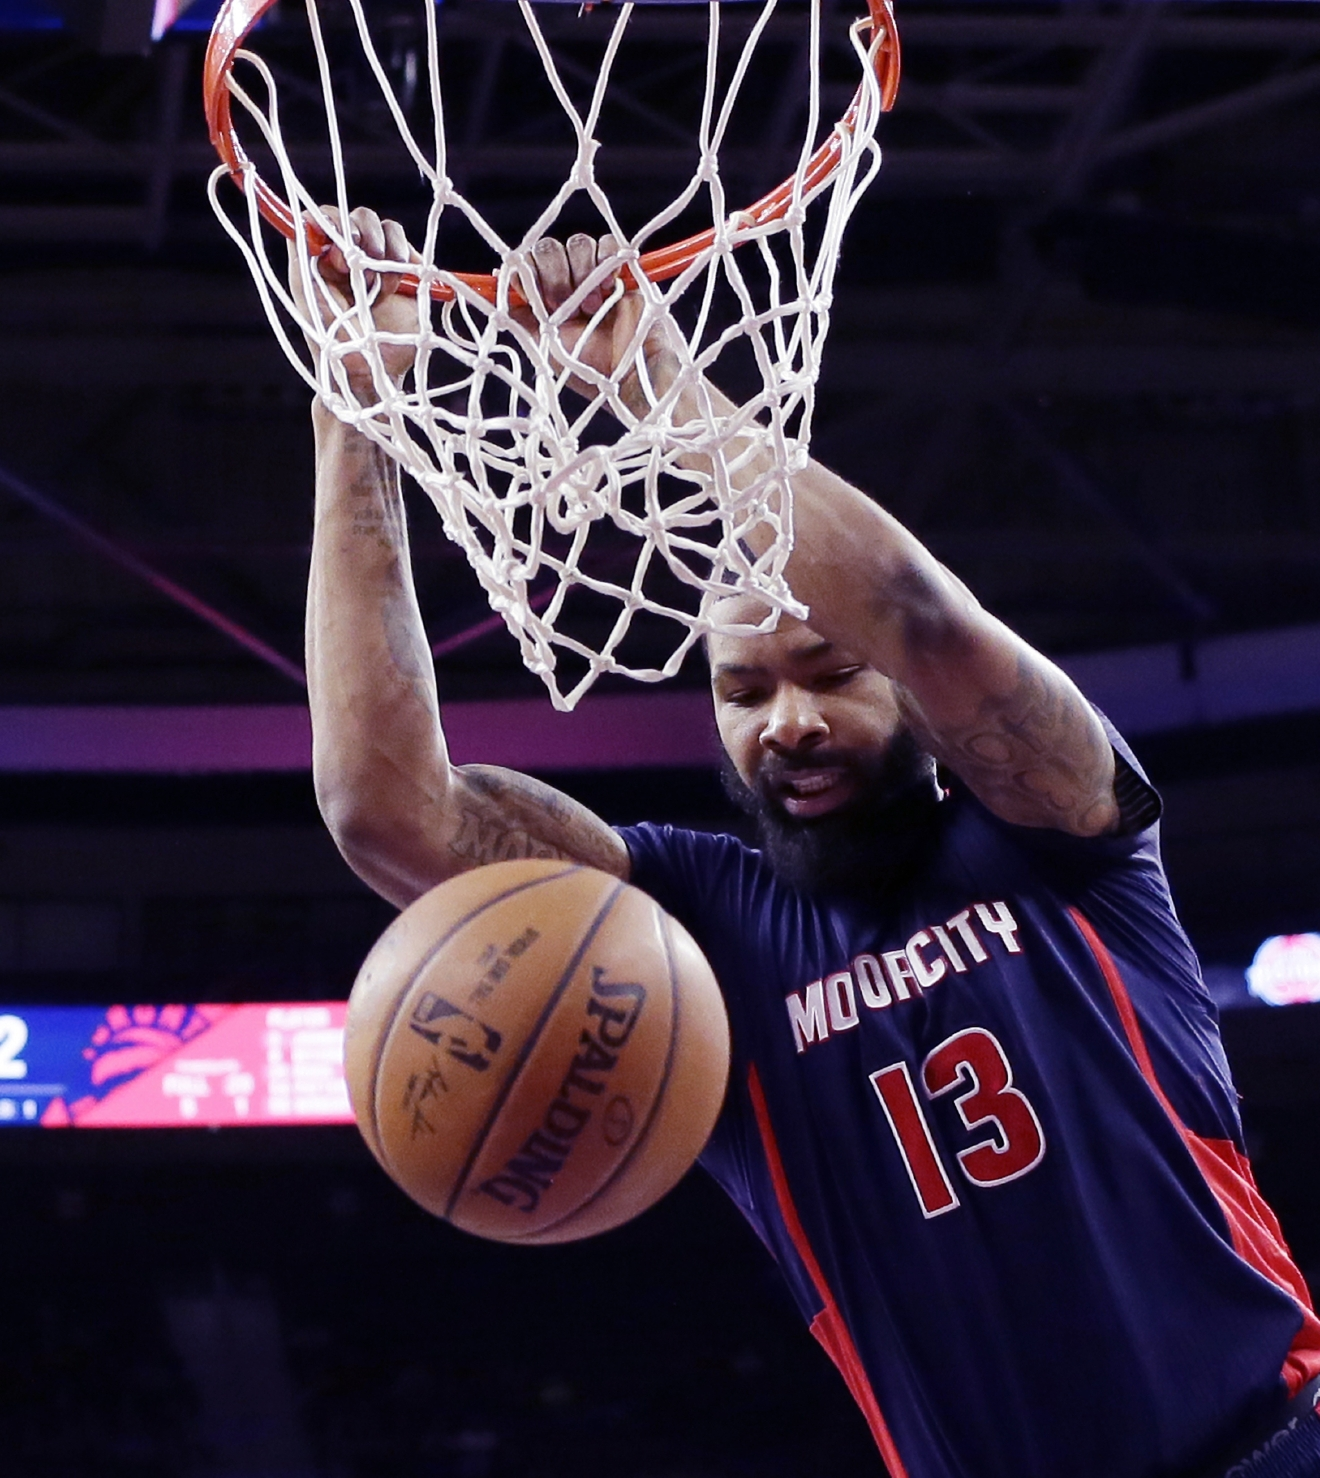 Detroit Pistons forward Marcus Morris dunks during the first half of an NBA basketball game against the Toronto Raptors, Sunday, Feb. 28, 2016, in Auburn Hills, Mich. (AP Photo/Carlos Osorio)